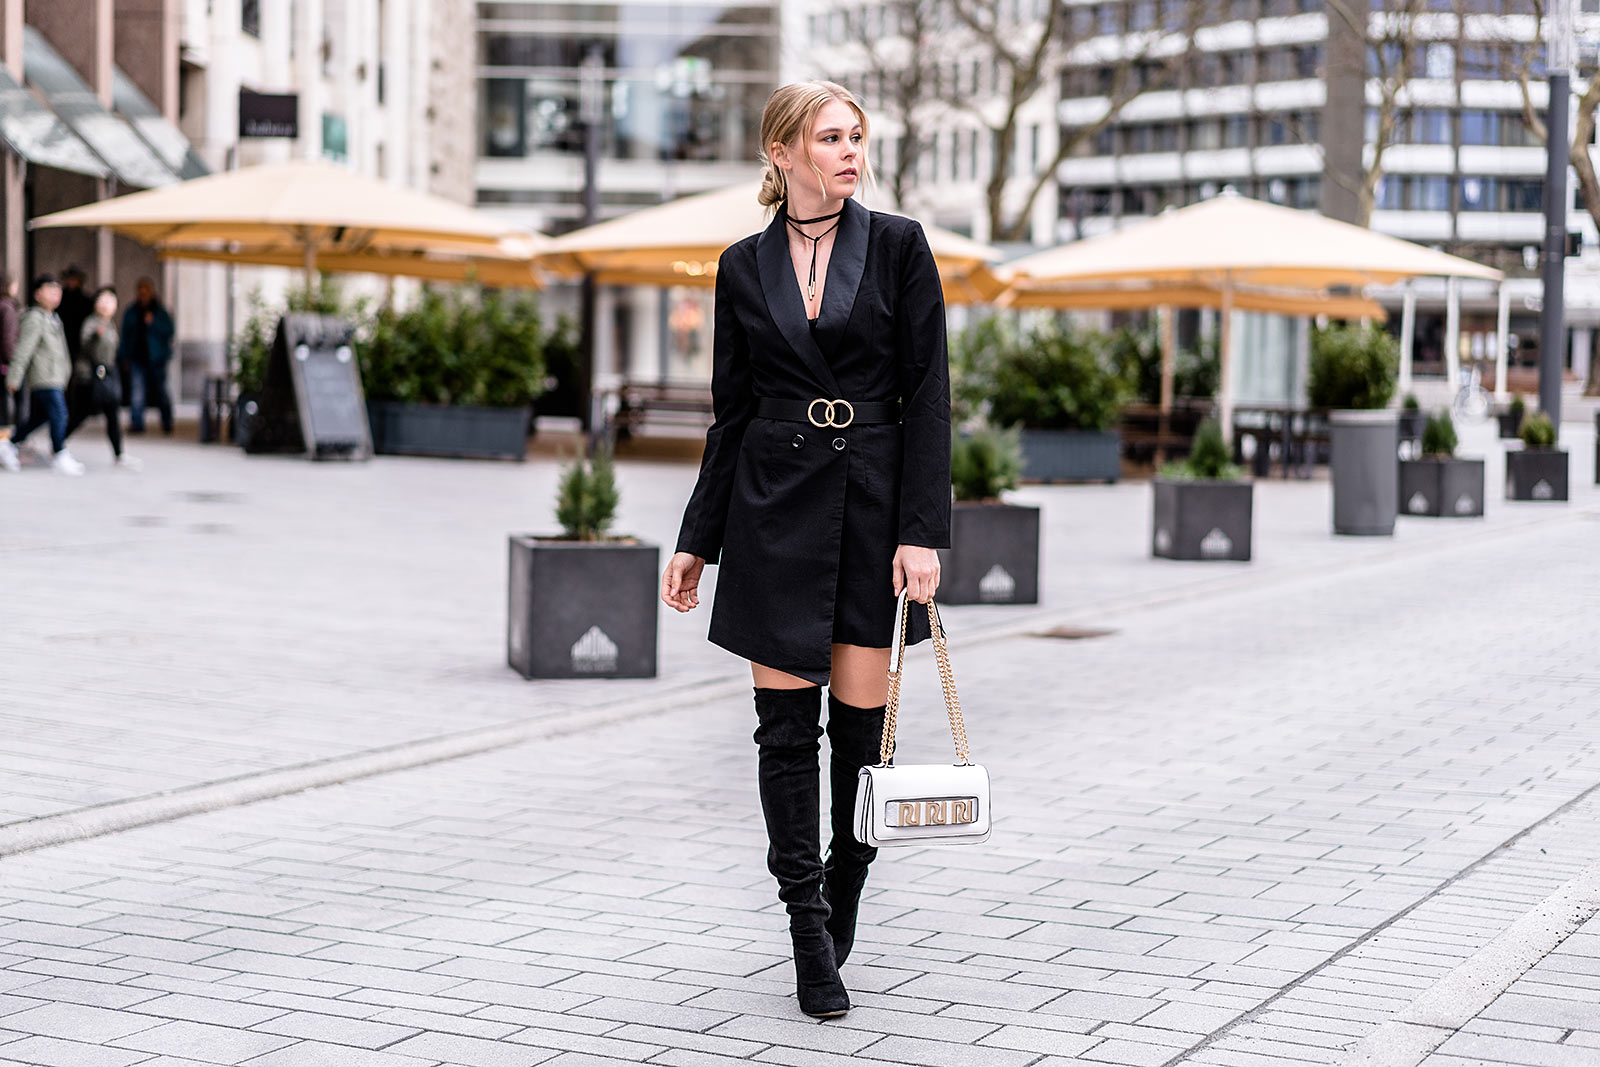 Interesting Fashion Blogger Sunnyinga Blazerkleid Streetstyle Outfit Schwarz  With Sthle Schwarz